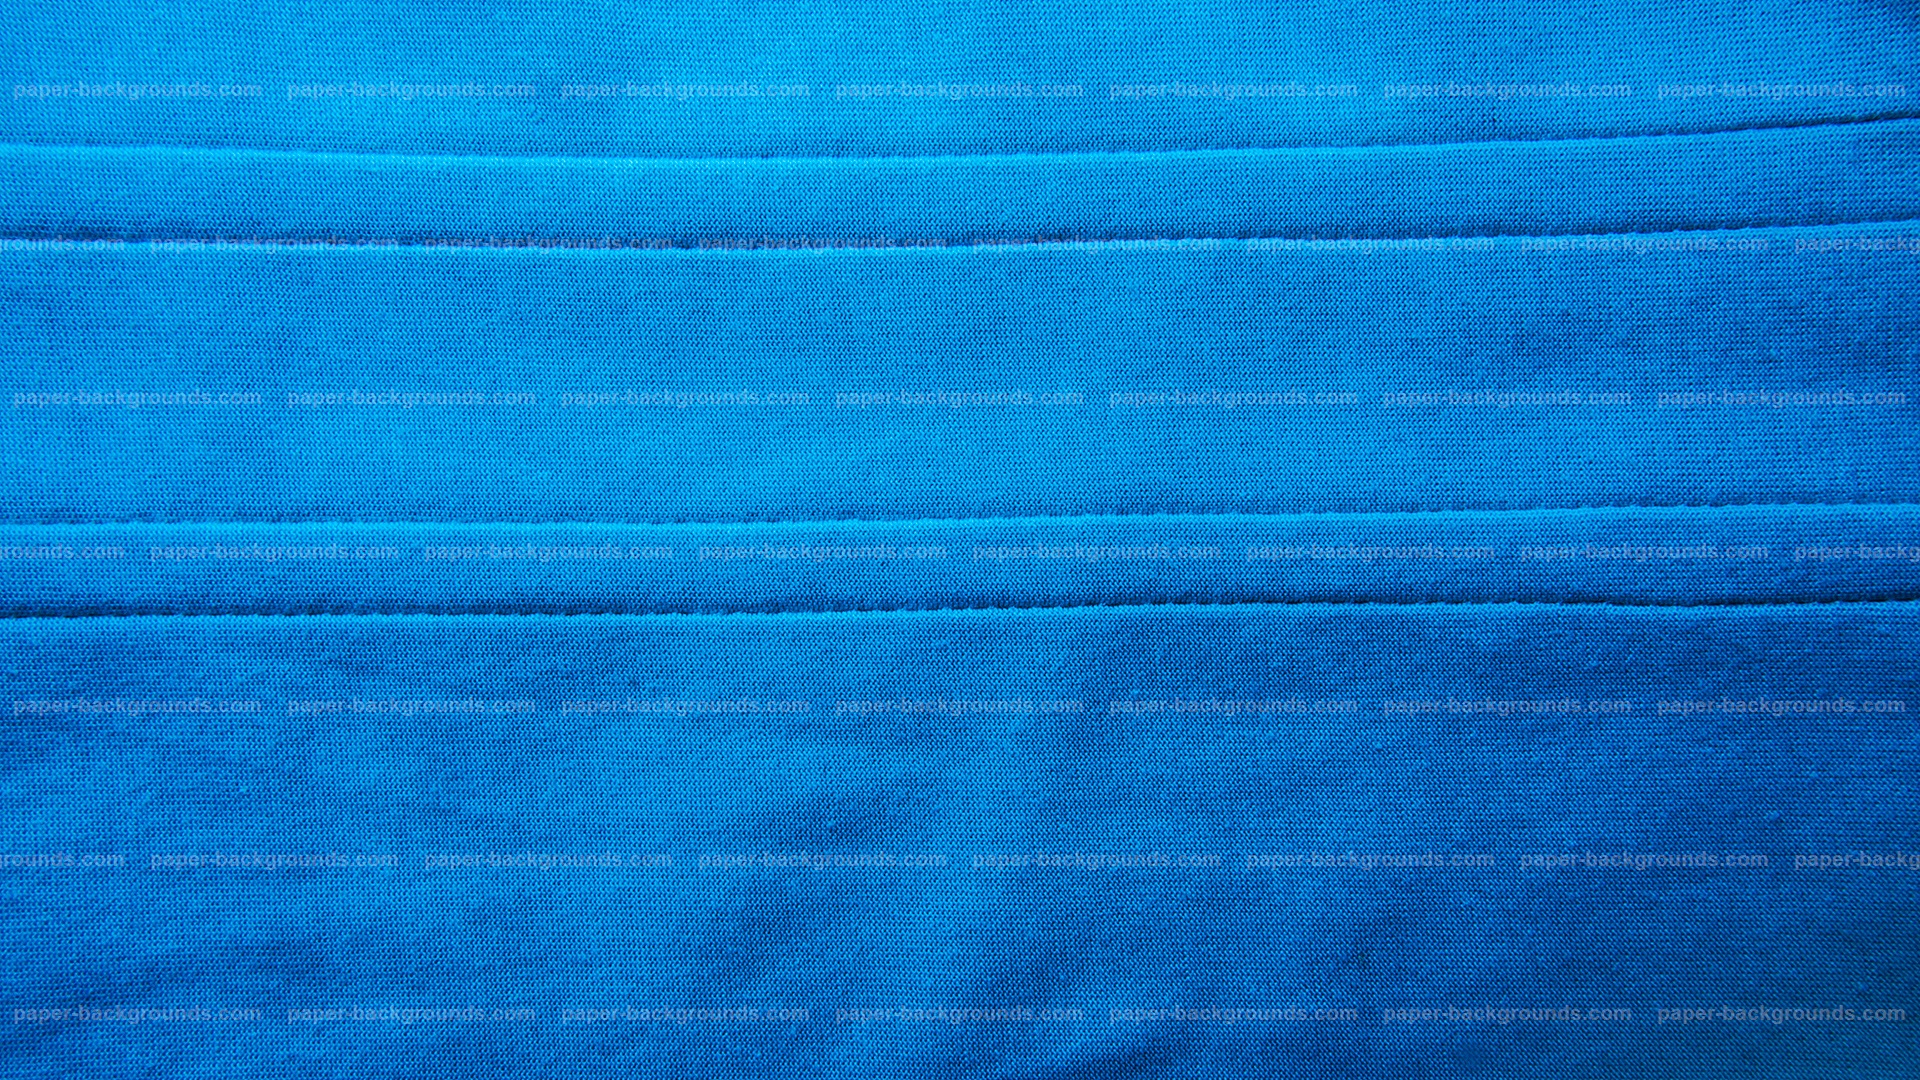 Blue Fabric Texture with Double Stitch HD